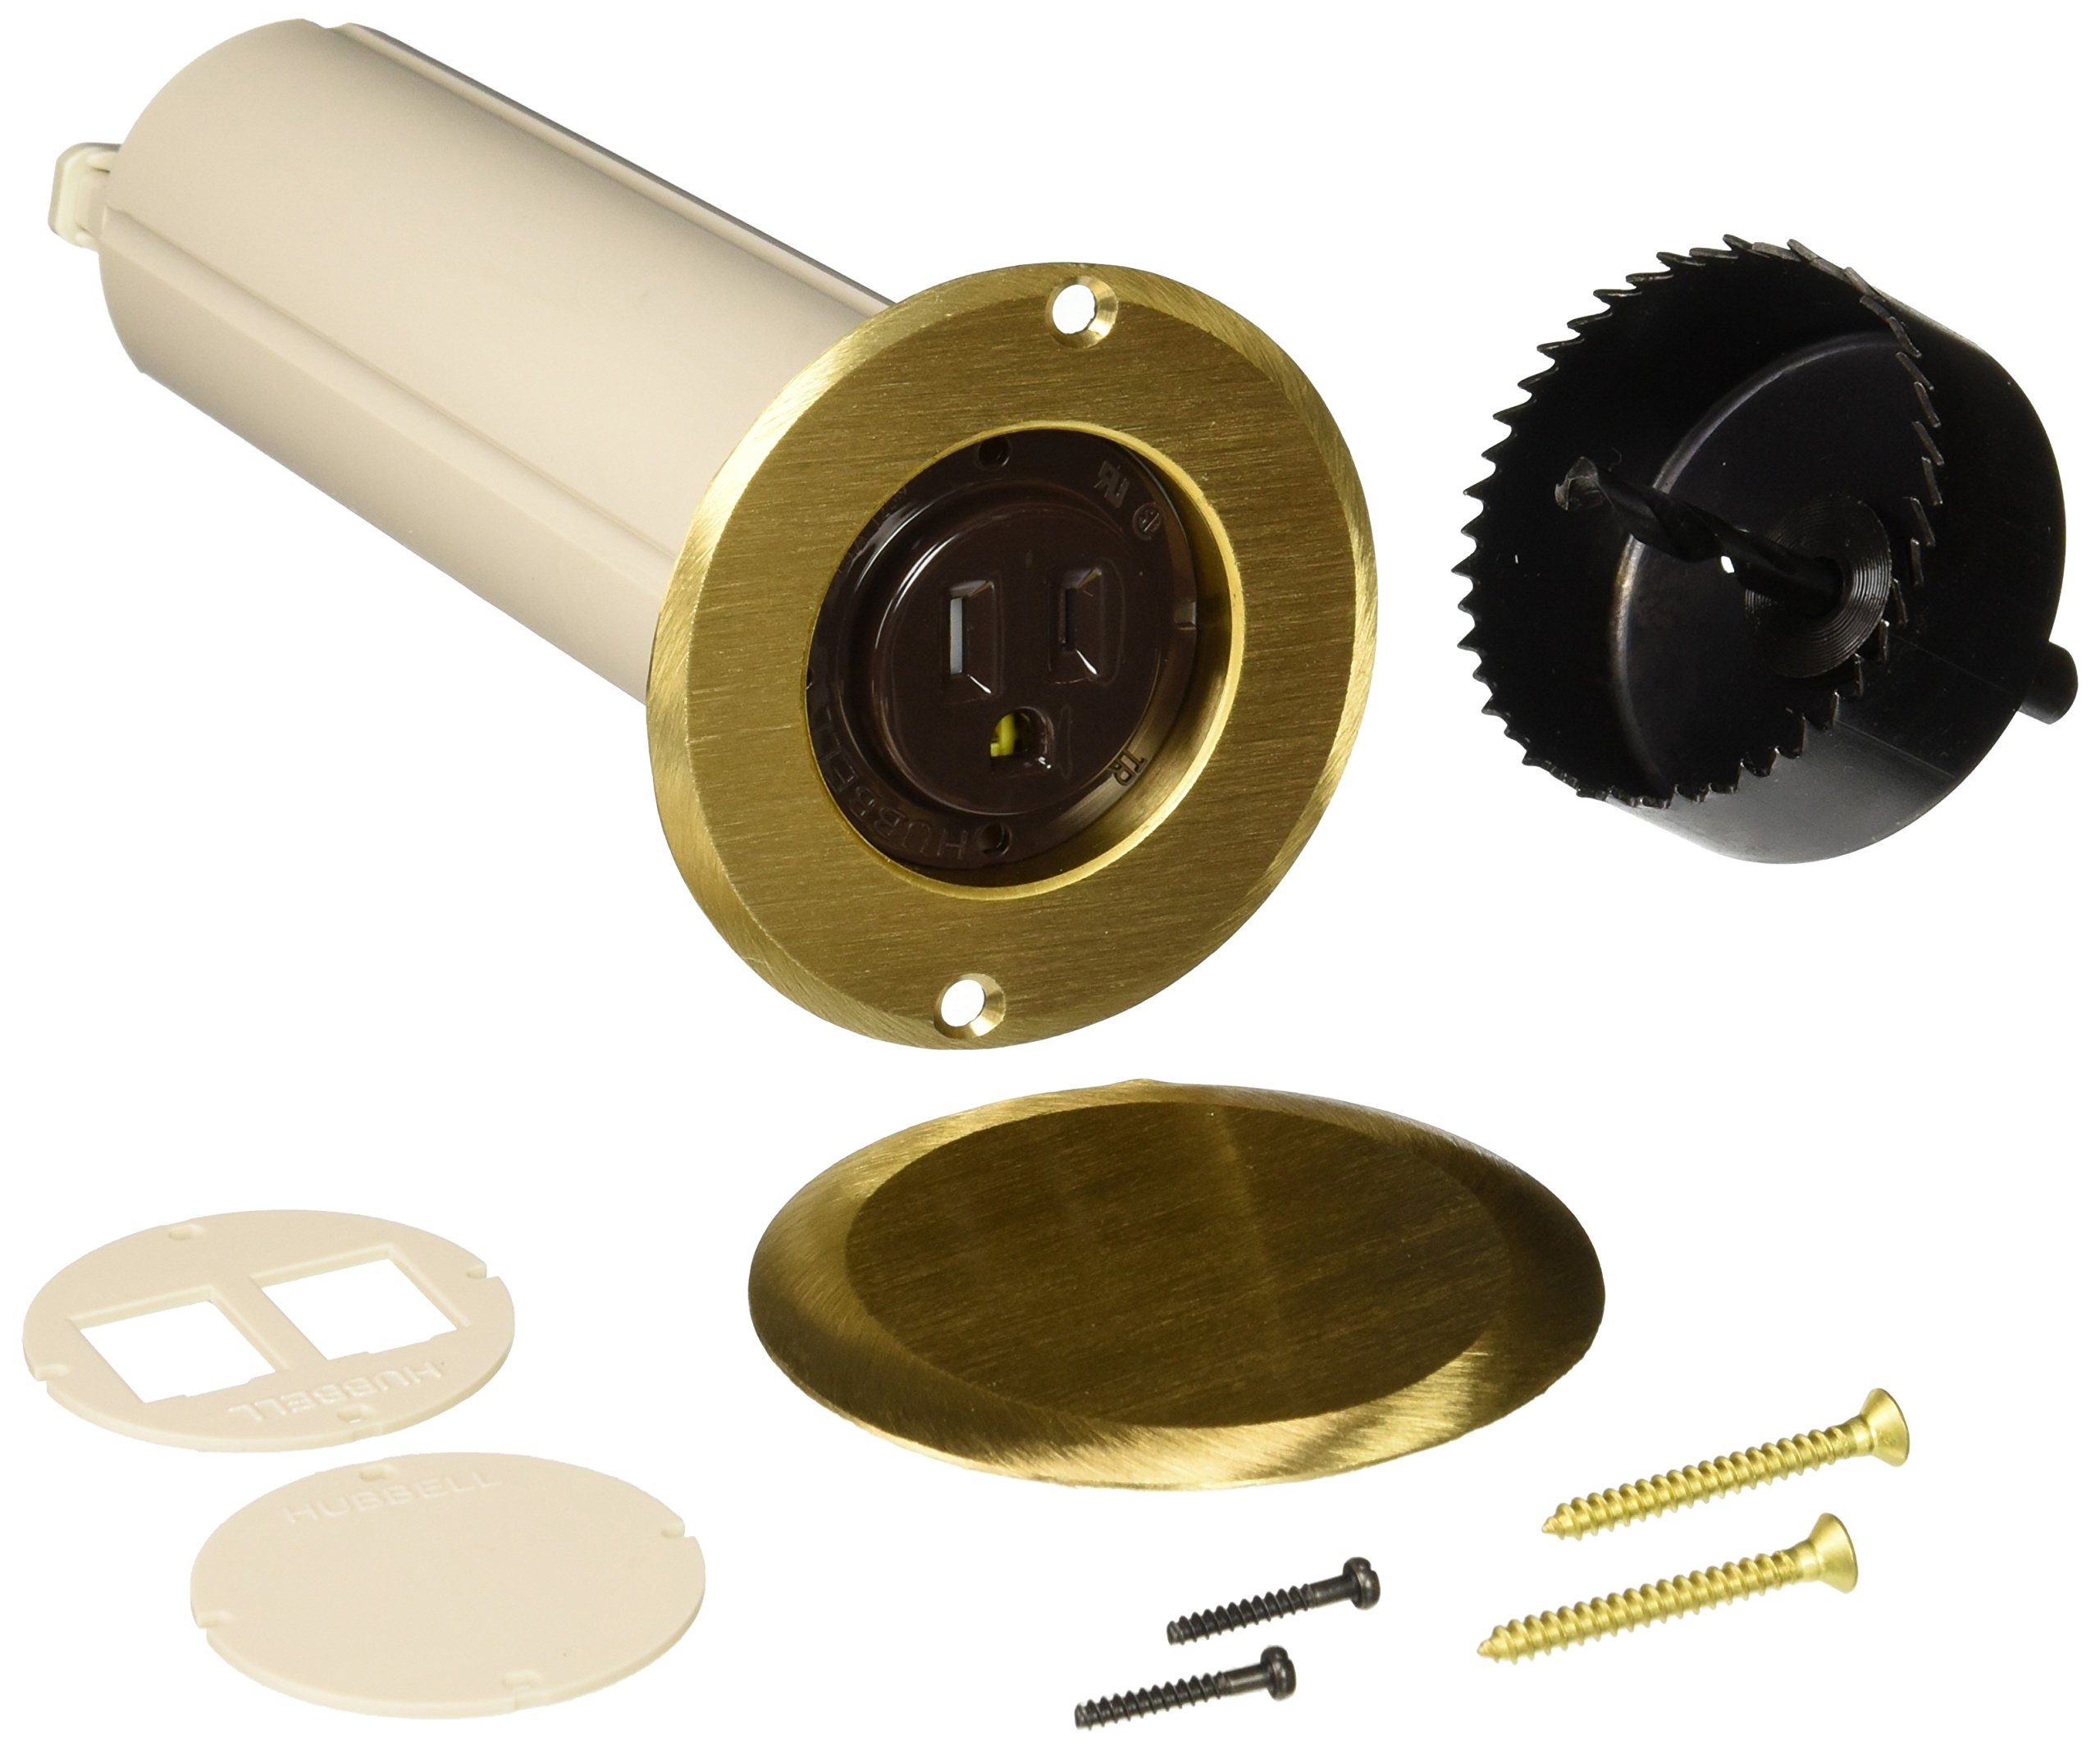 Hubbell-Raco 6RF151SR Drop in Floor Box Kit with Brass Cover, Single Tamper Resistant Receptacle & 2-1/2-Inch Hole Saw